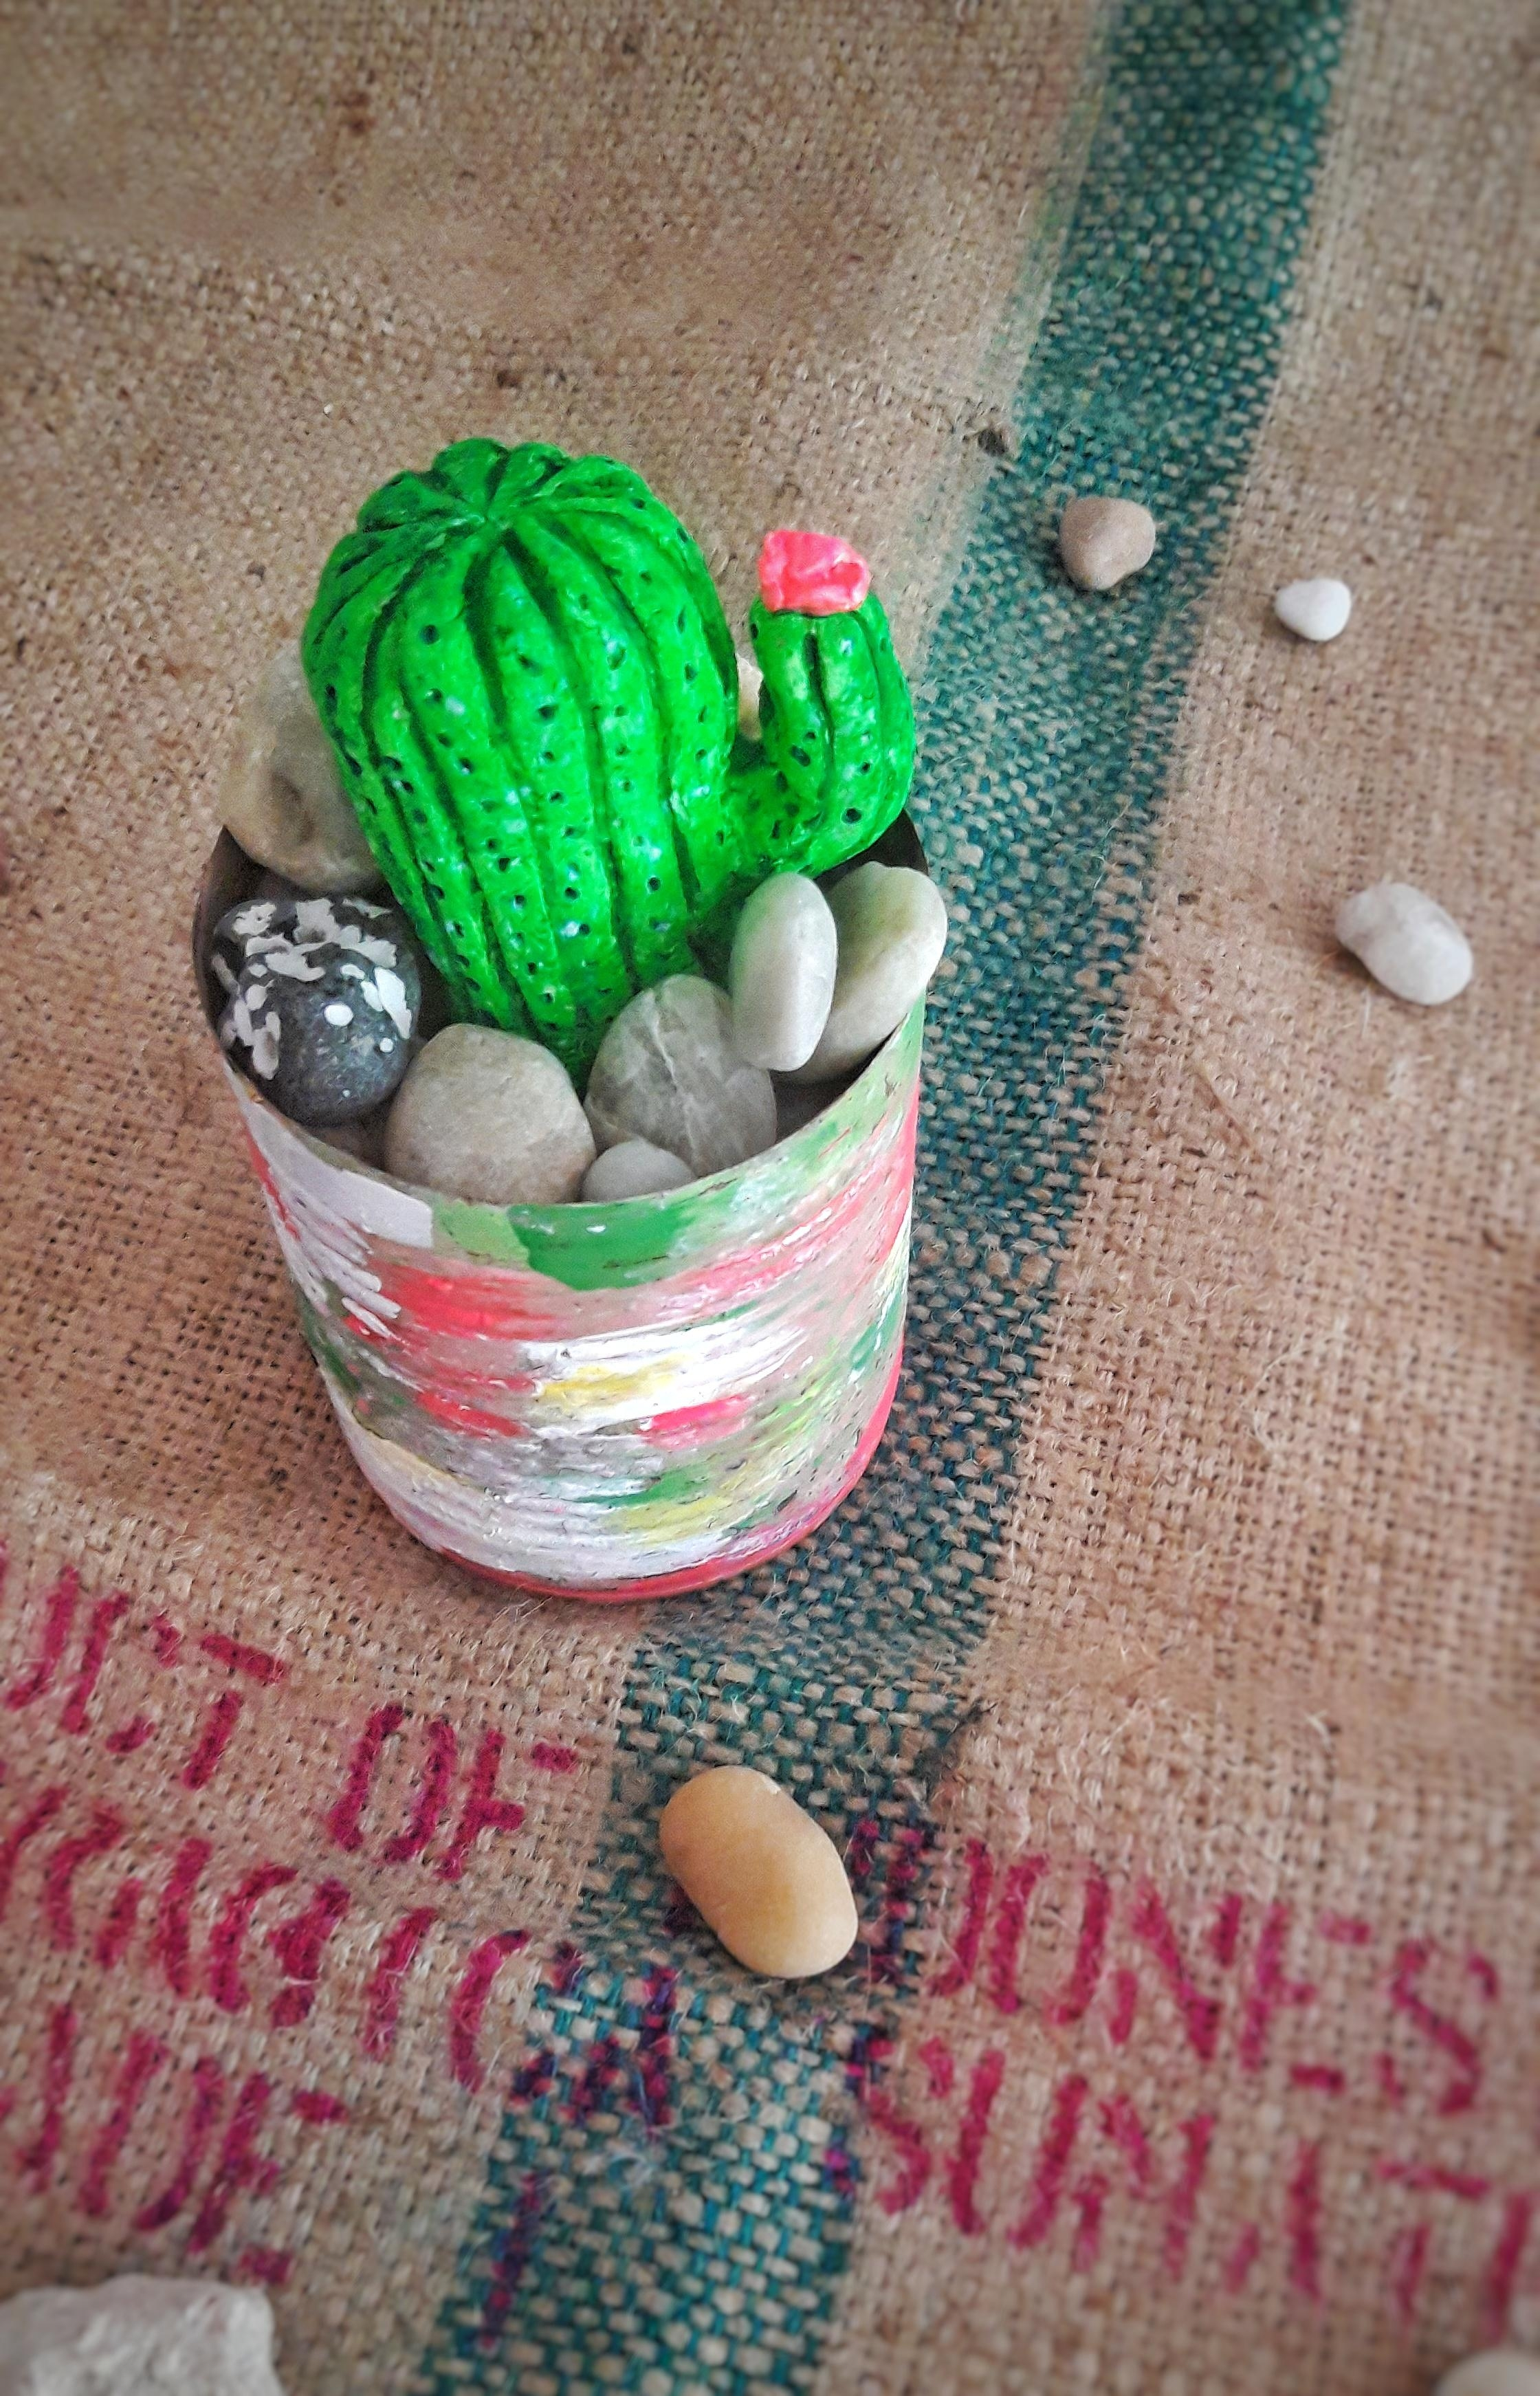 #kleiinergrünerkaktus #dekoidee #upcycling #diy #doityourself #homesweethome #decoration